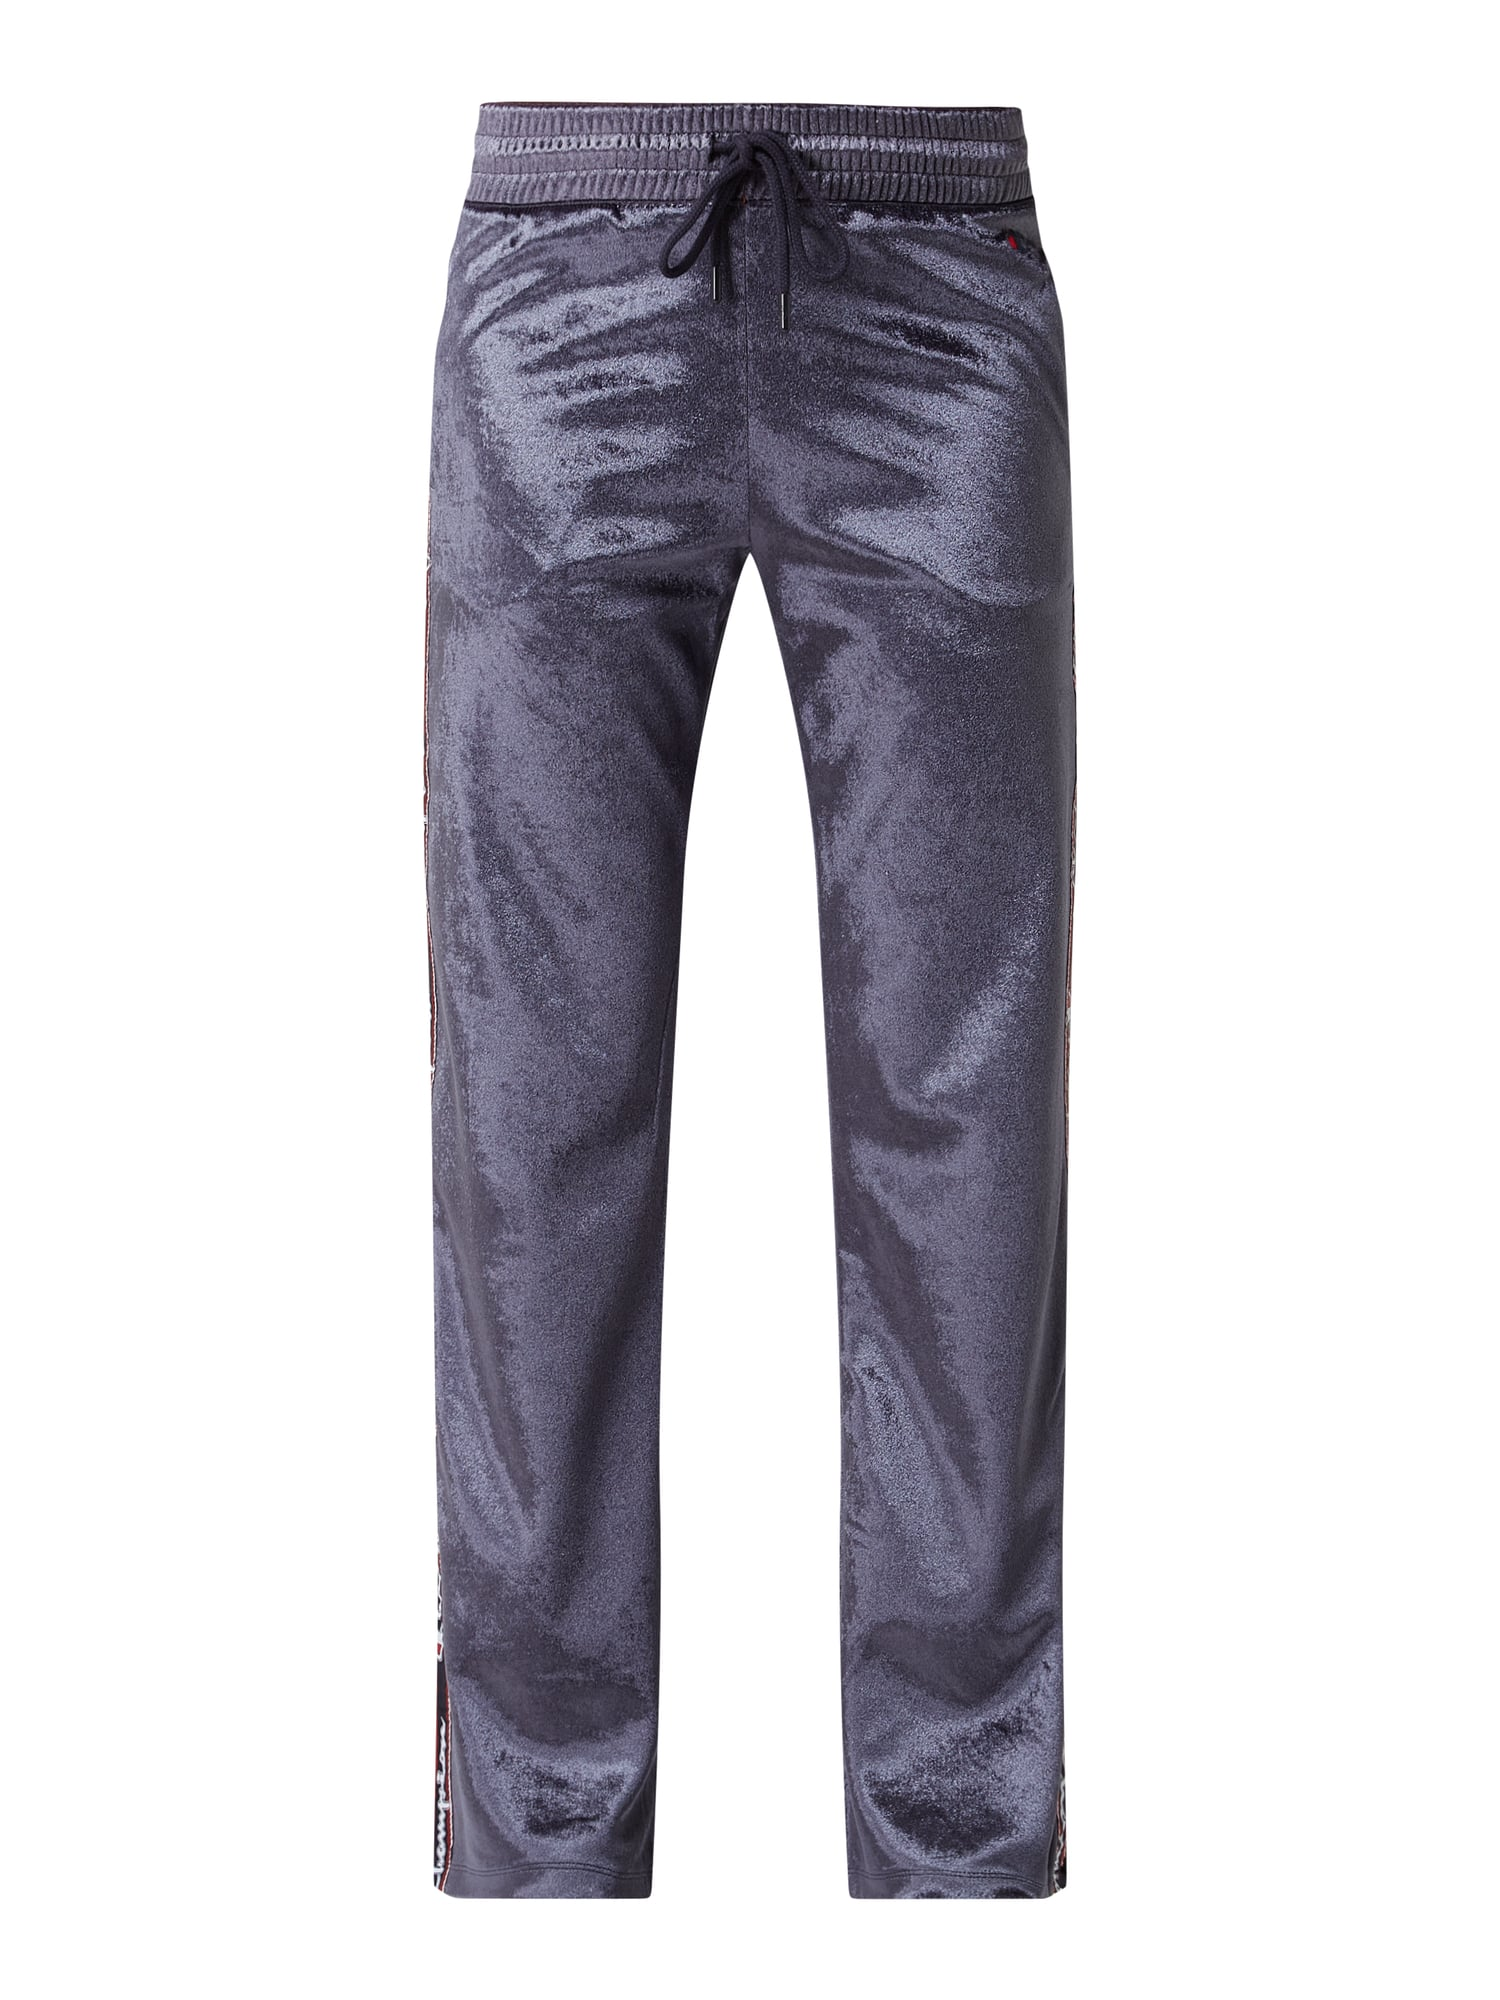 CHAMPION Trackpants aus Samt in Blau Türkis online kaufen (4022216) ? P&C Online Shop